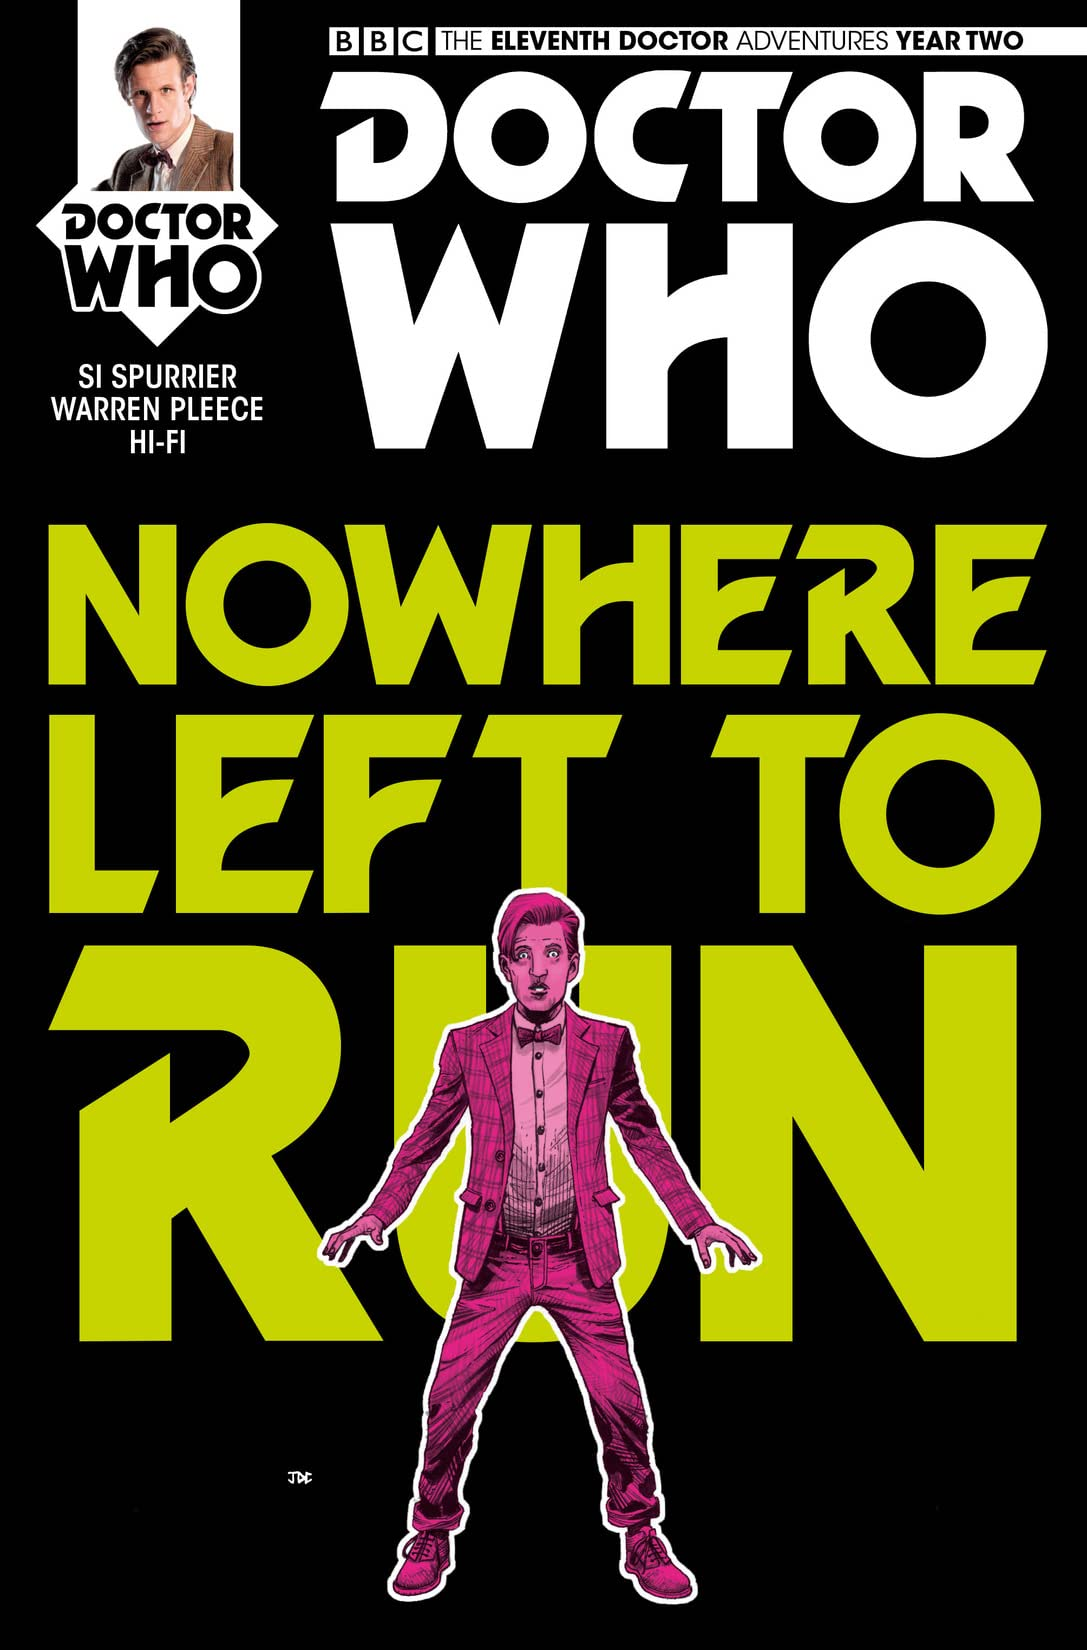 Doctor Who: The Eleventh Doctor #2.5